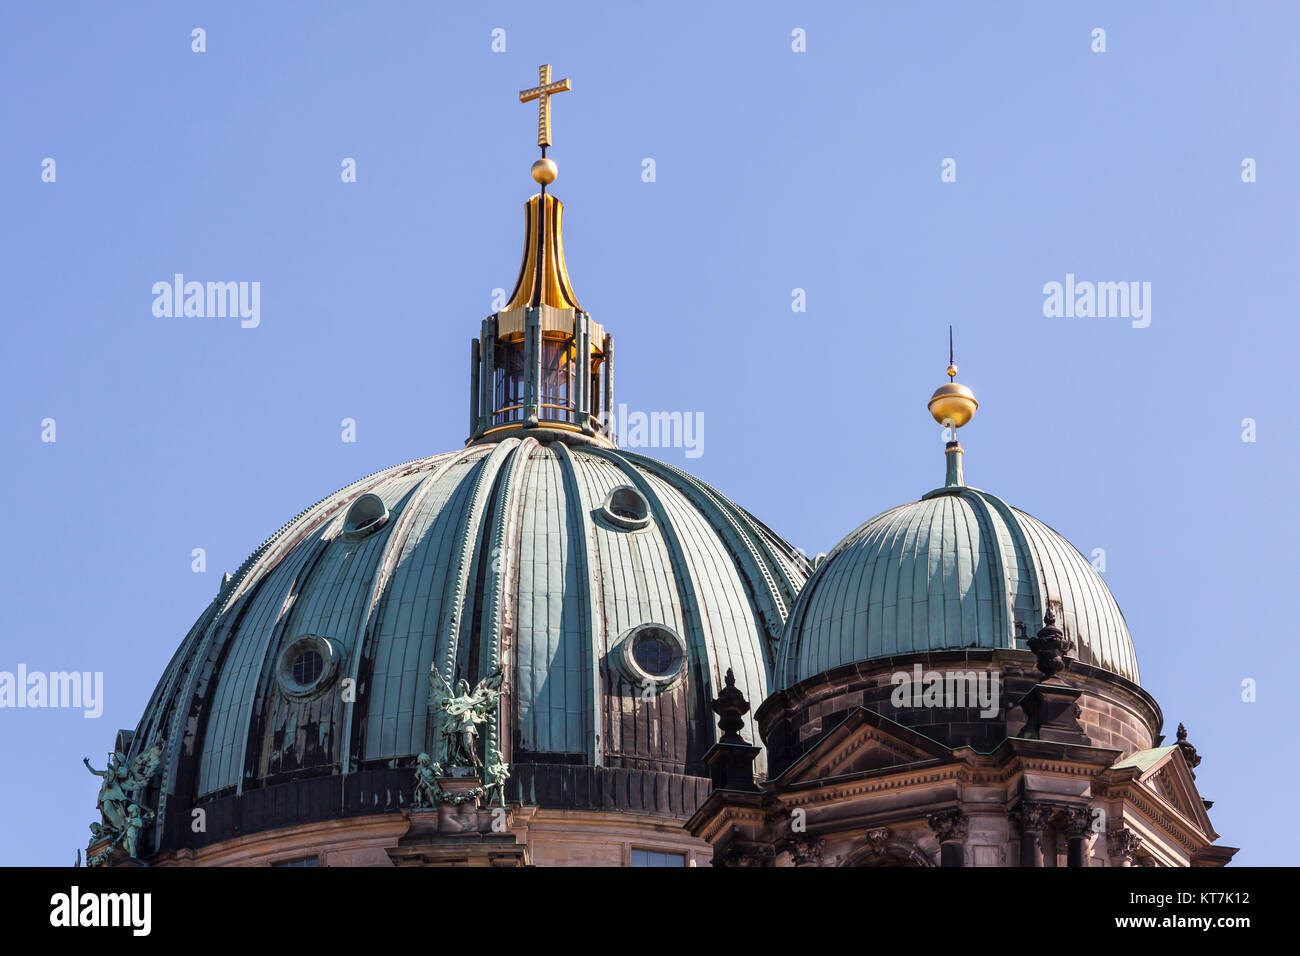 the dome of the berlin cathedral - Stock Image